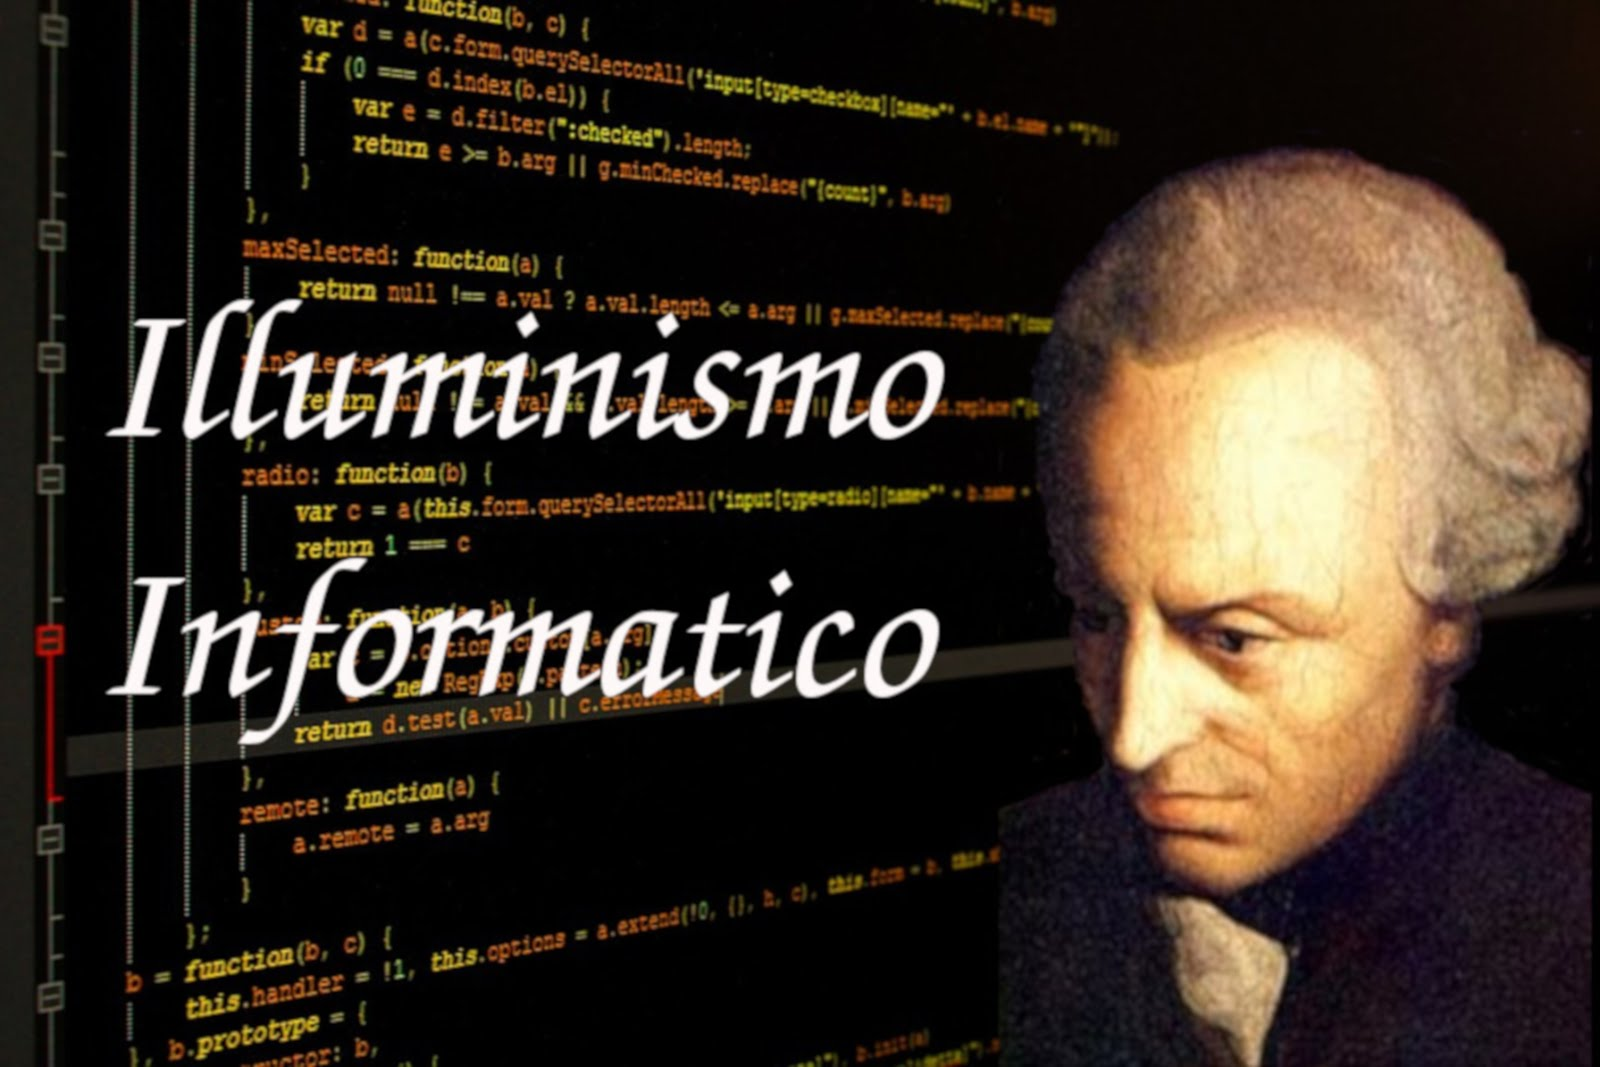 Canale youtube: Illuminismo informatico